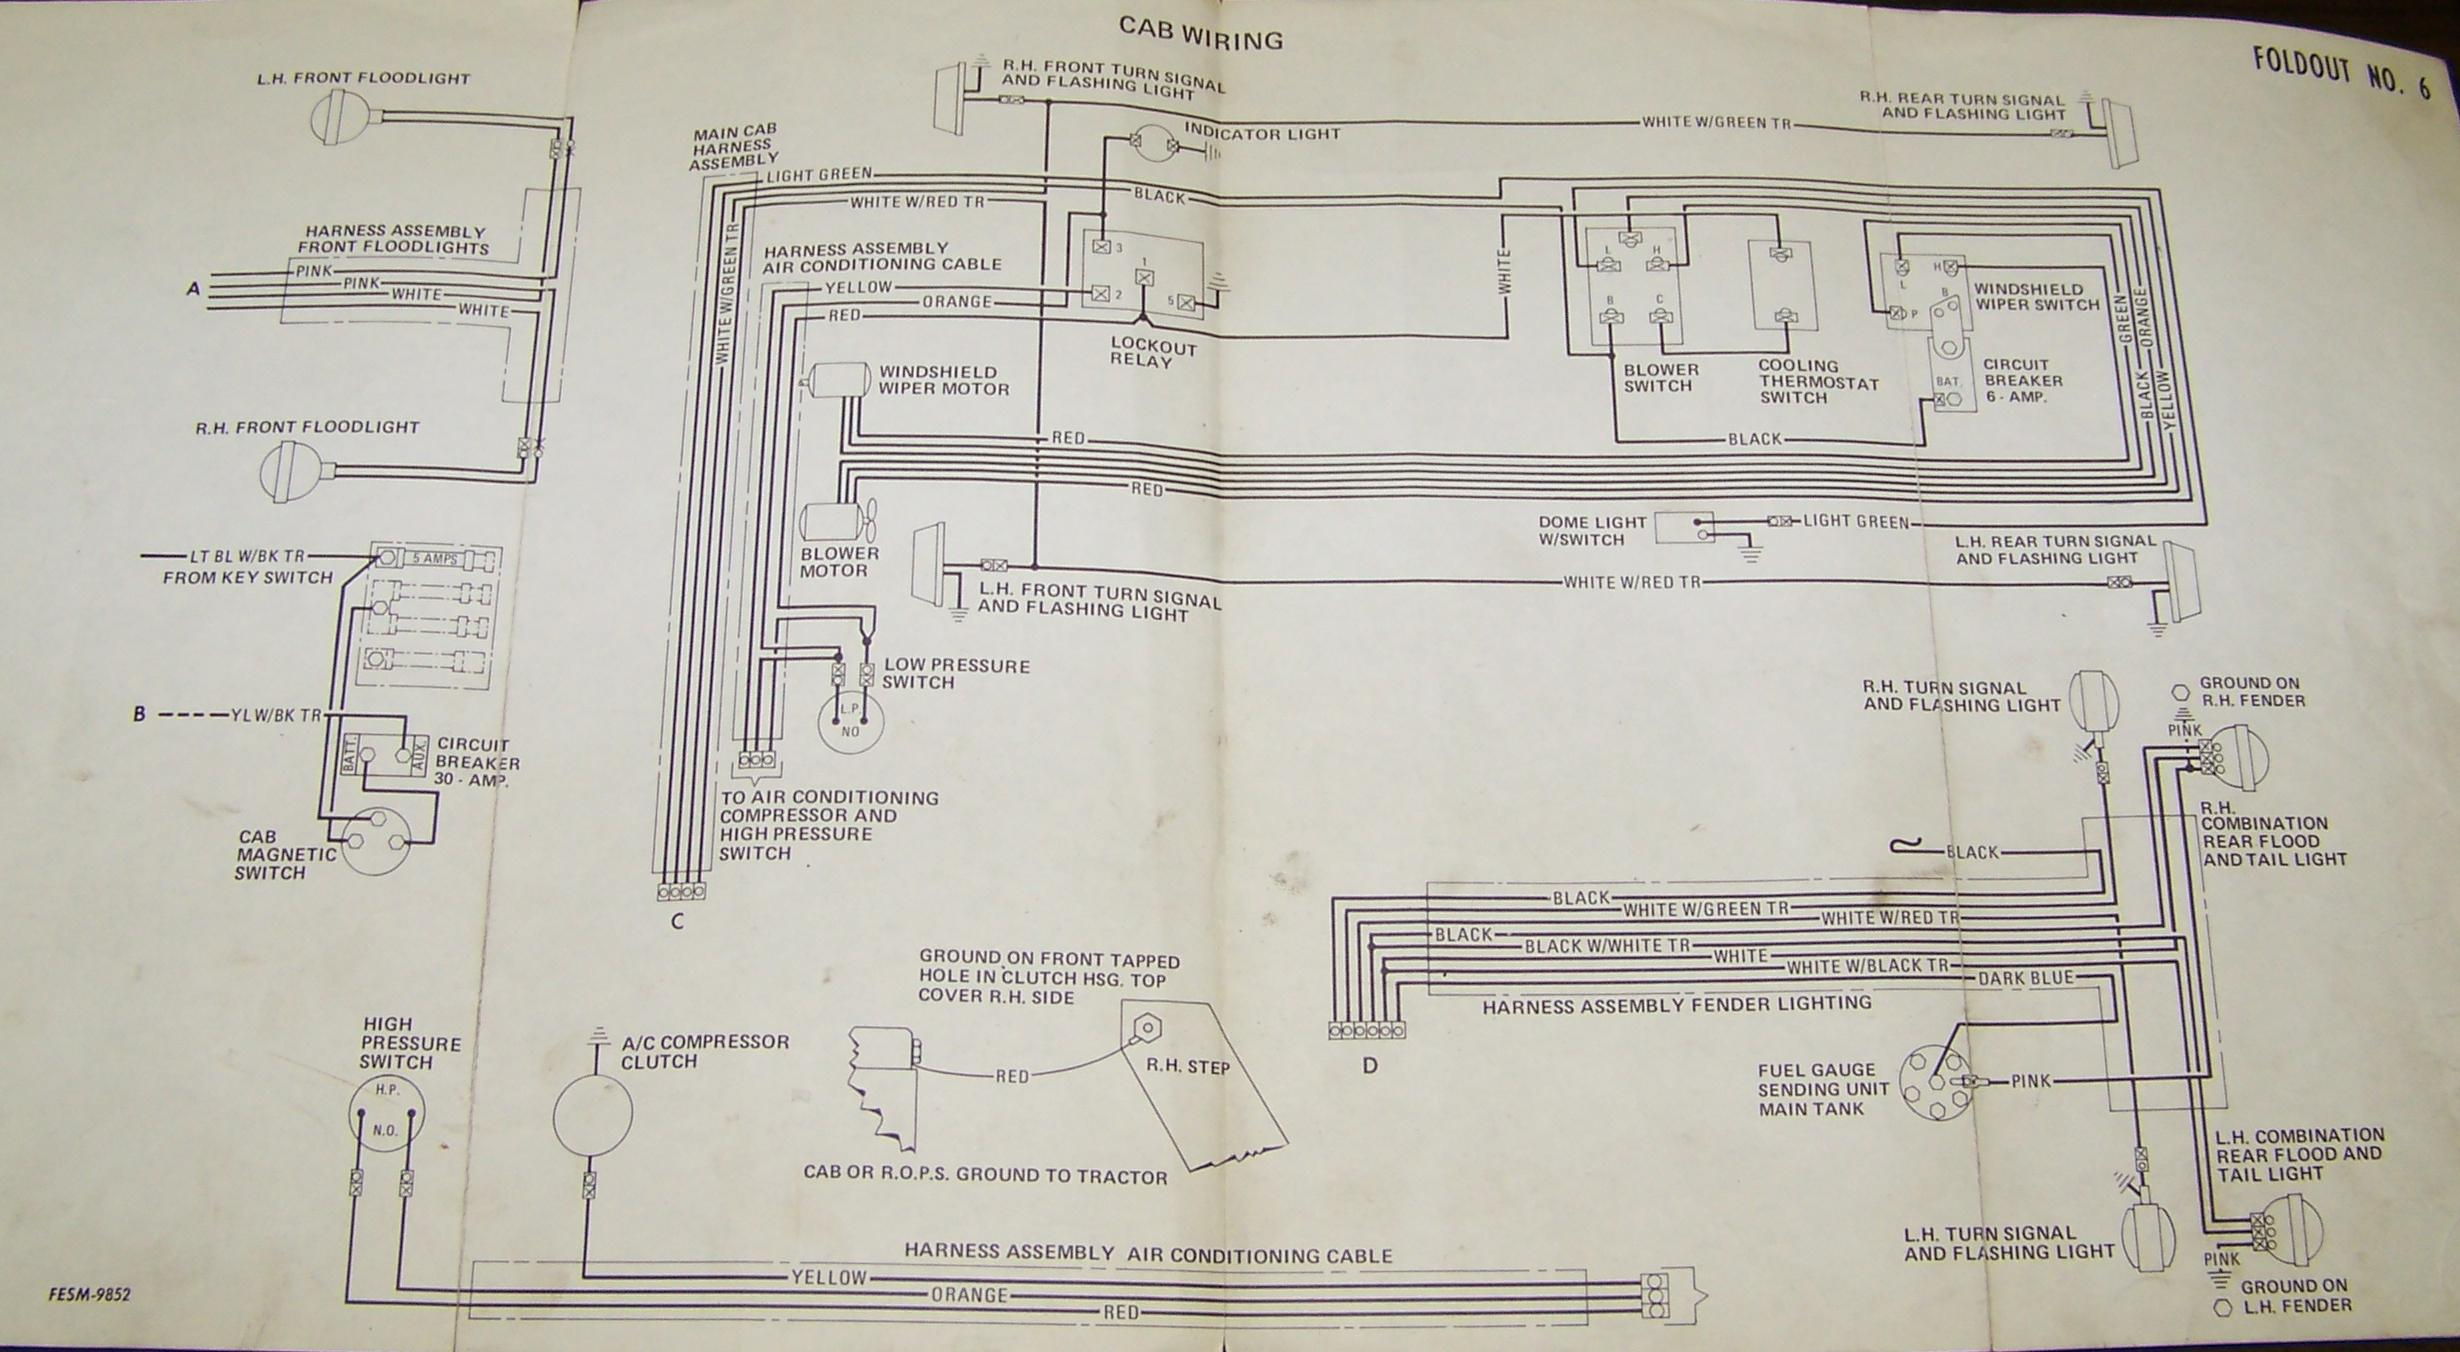 related pictures 1949 farmall cub wiring diagram images frompo farmall cub electrical diagram ih tractor wiring diagram schema wiring diagrams farmall cub tractor wiring diagram 1949 farmall cub tractor